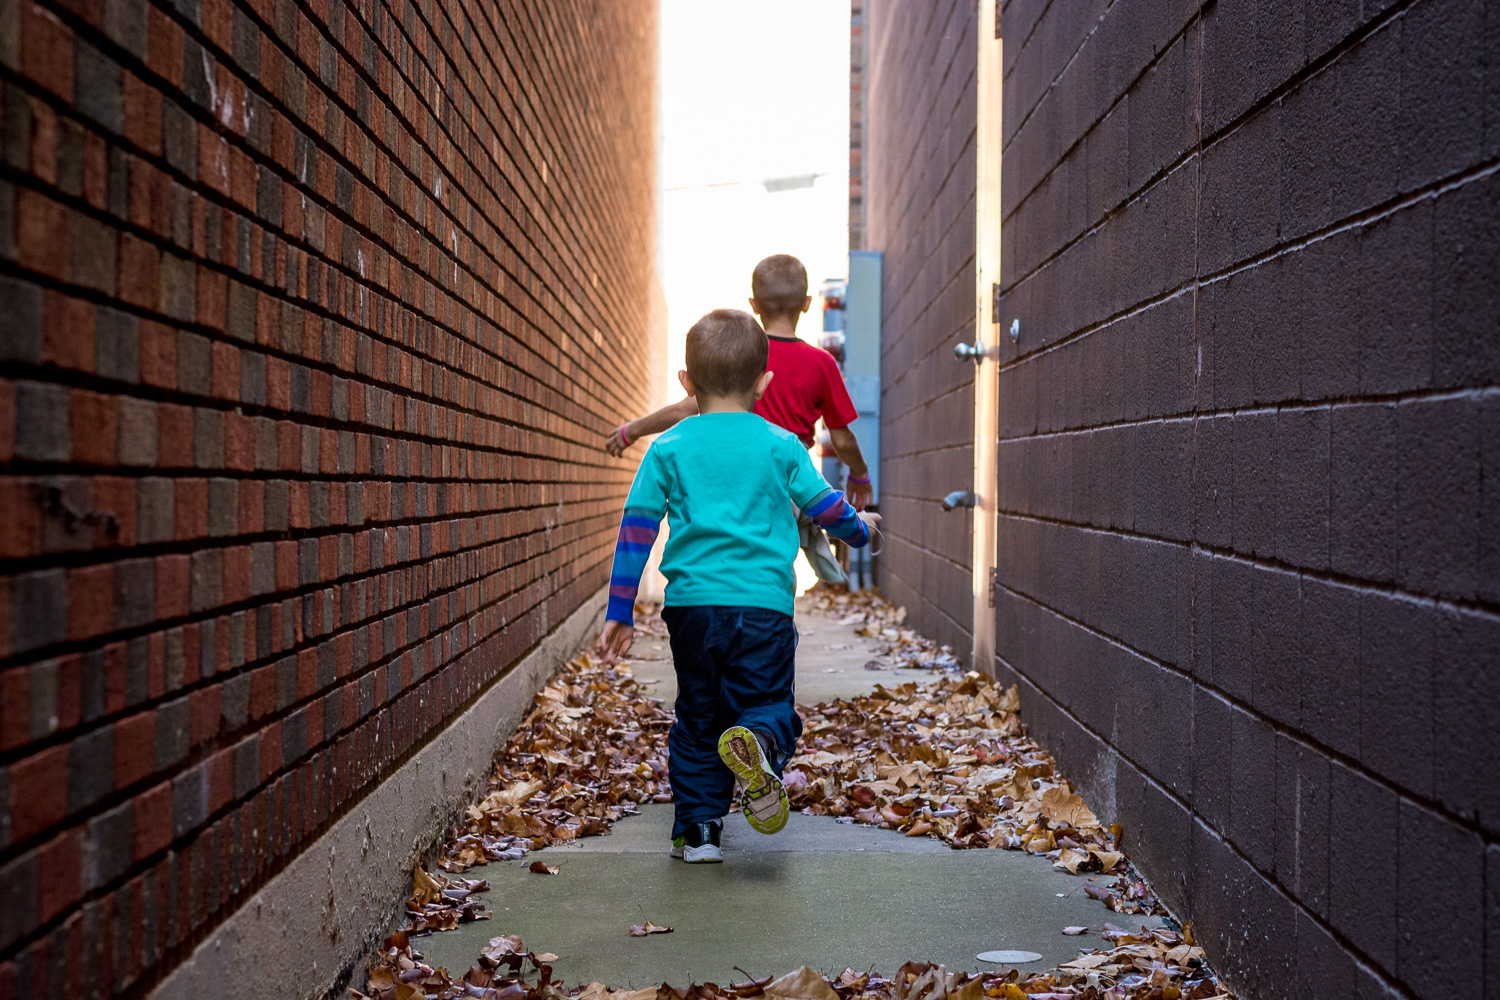 kids running in an alley with no color grading